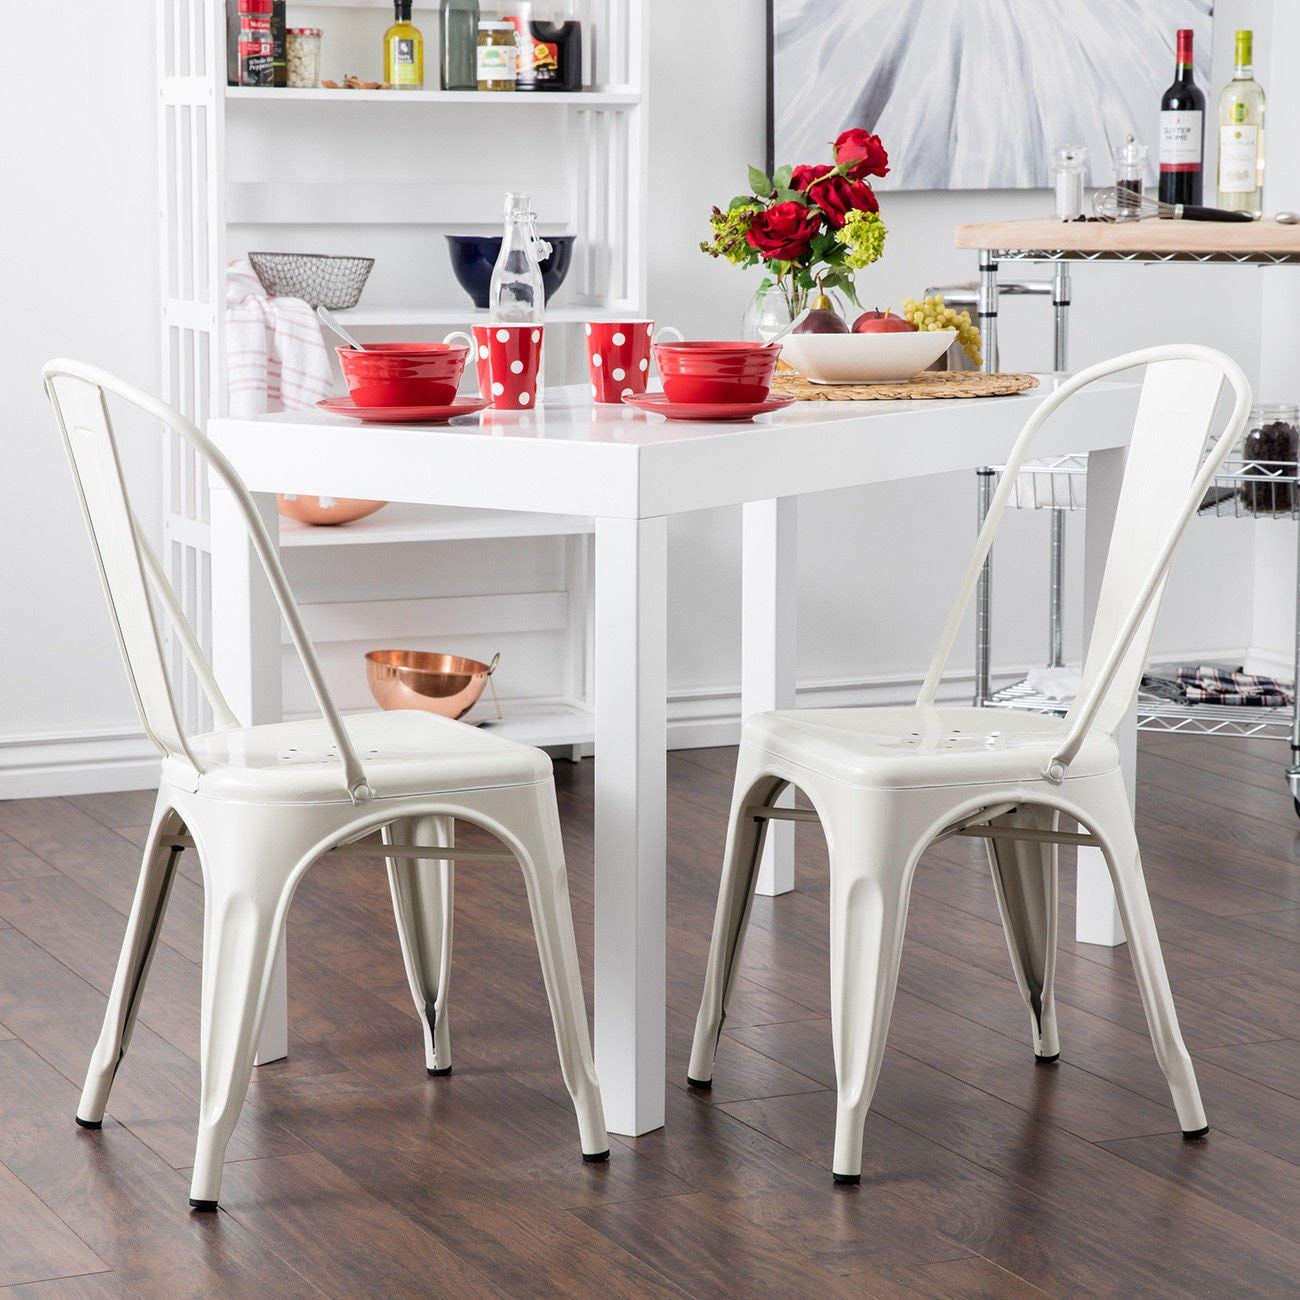 GHP 4-Pcs 330-Lbs Capacity White Steel Stackable Vintage Bistro Cafe Dining Chairs